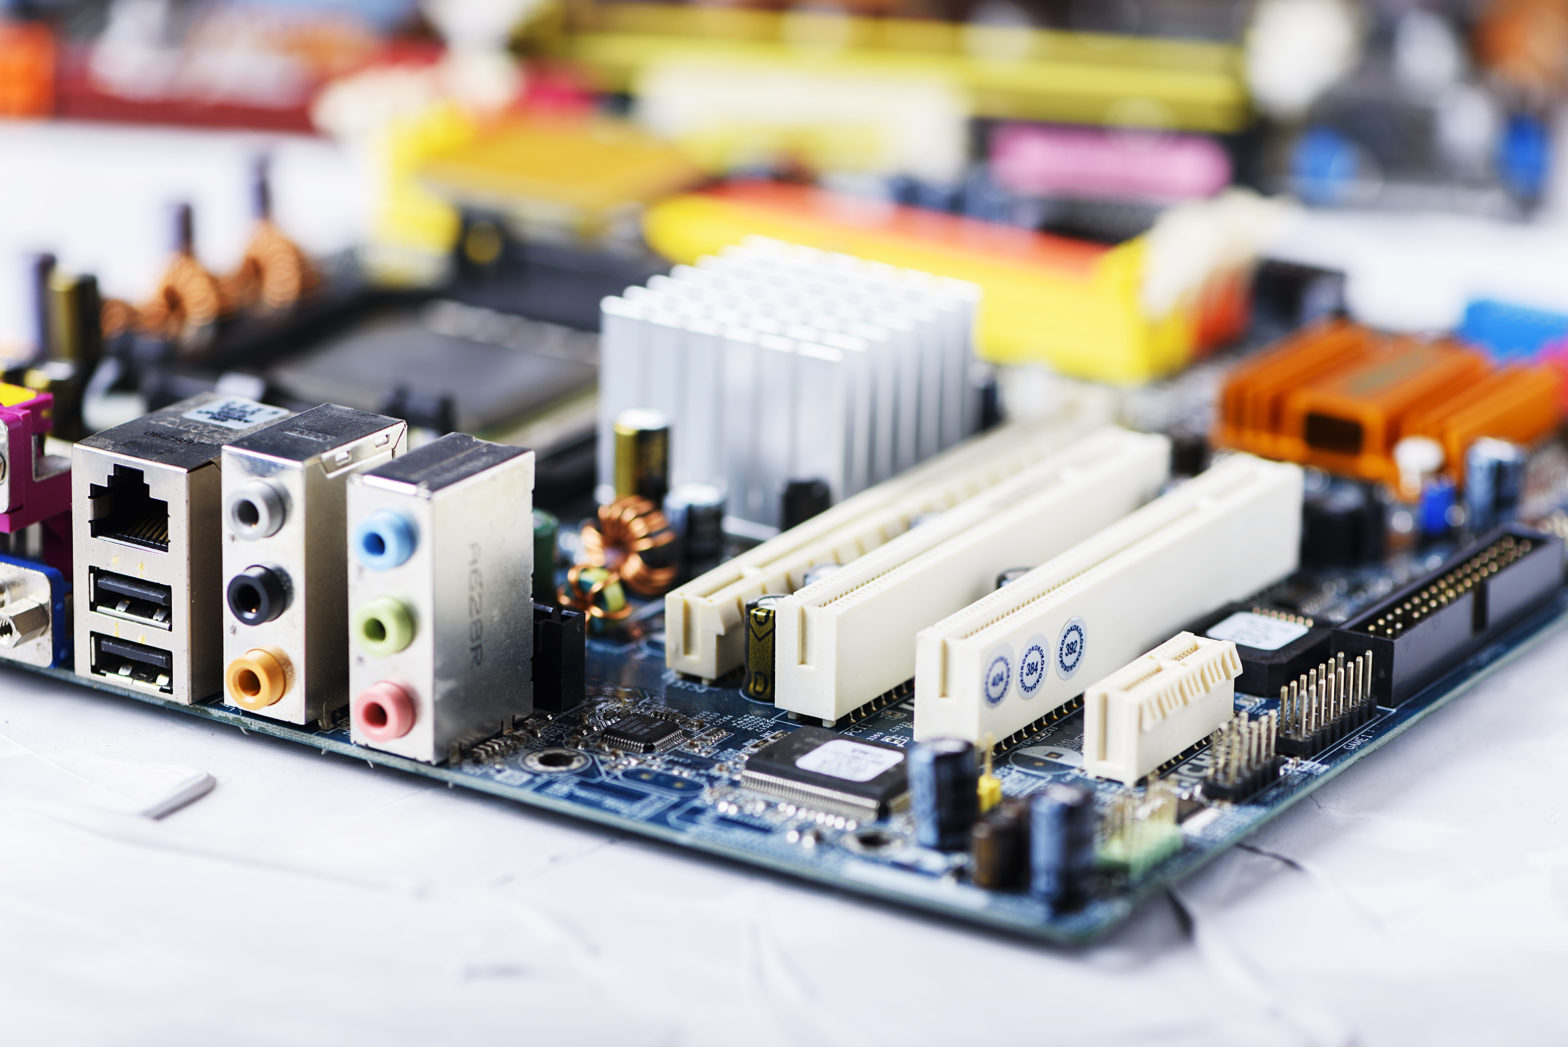 Electrical and electronic products